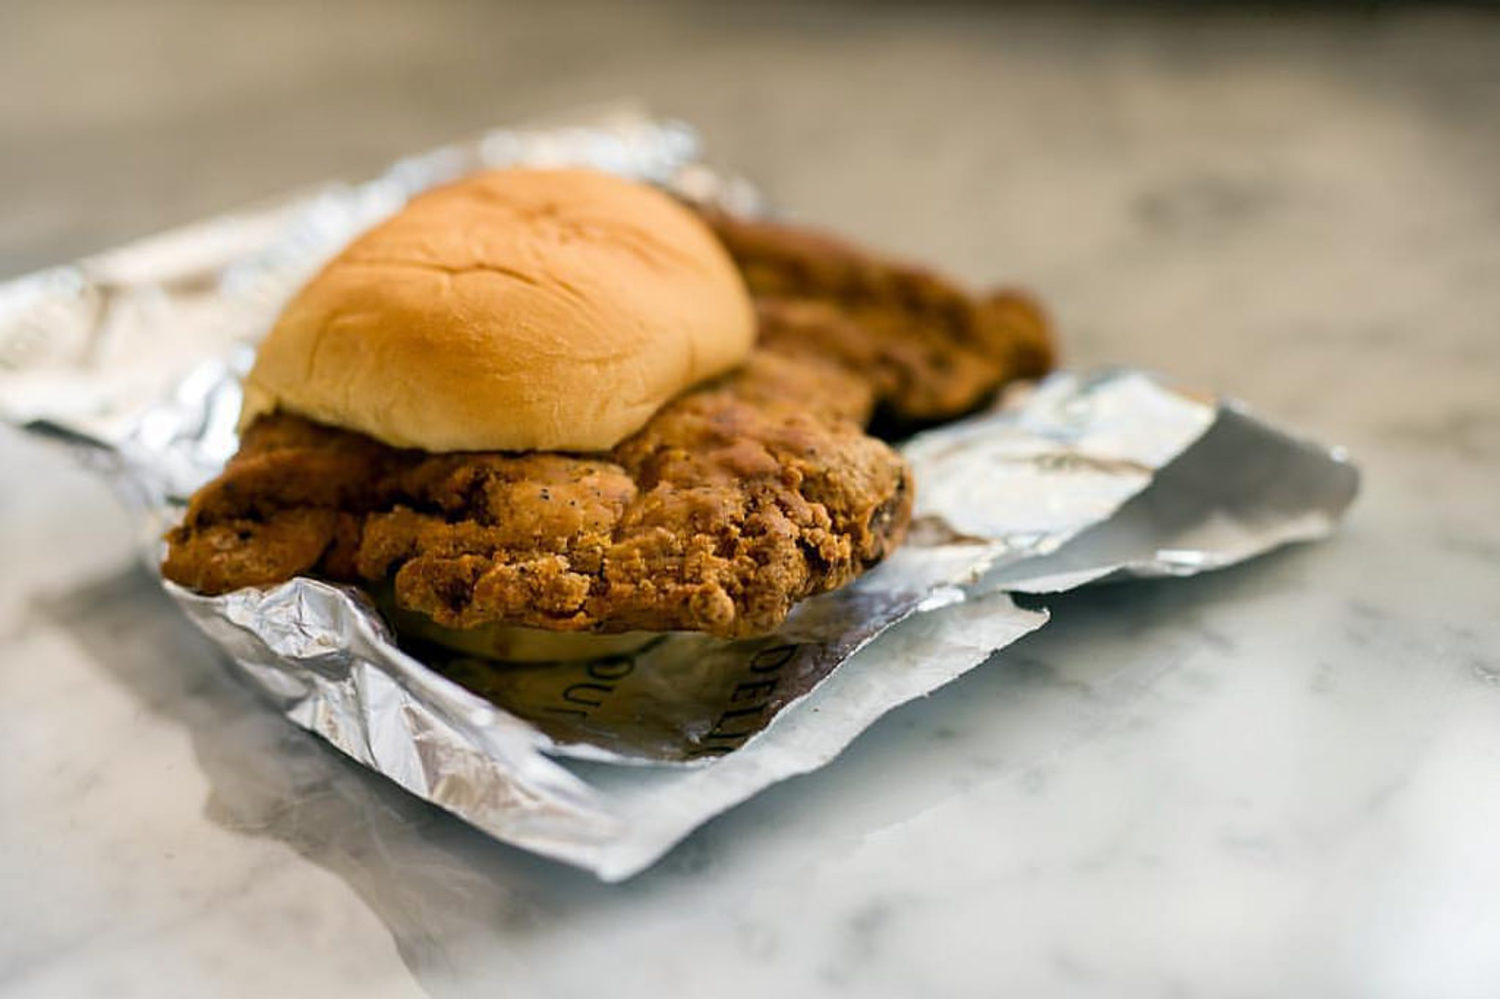 The Fuku #friedchicken sandwich by David Chang is a slab of crispy, juicy chicken with pickles and a buttered Martin's potato roll was pretty badass for $8.